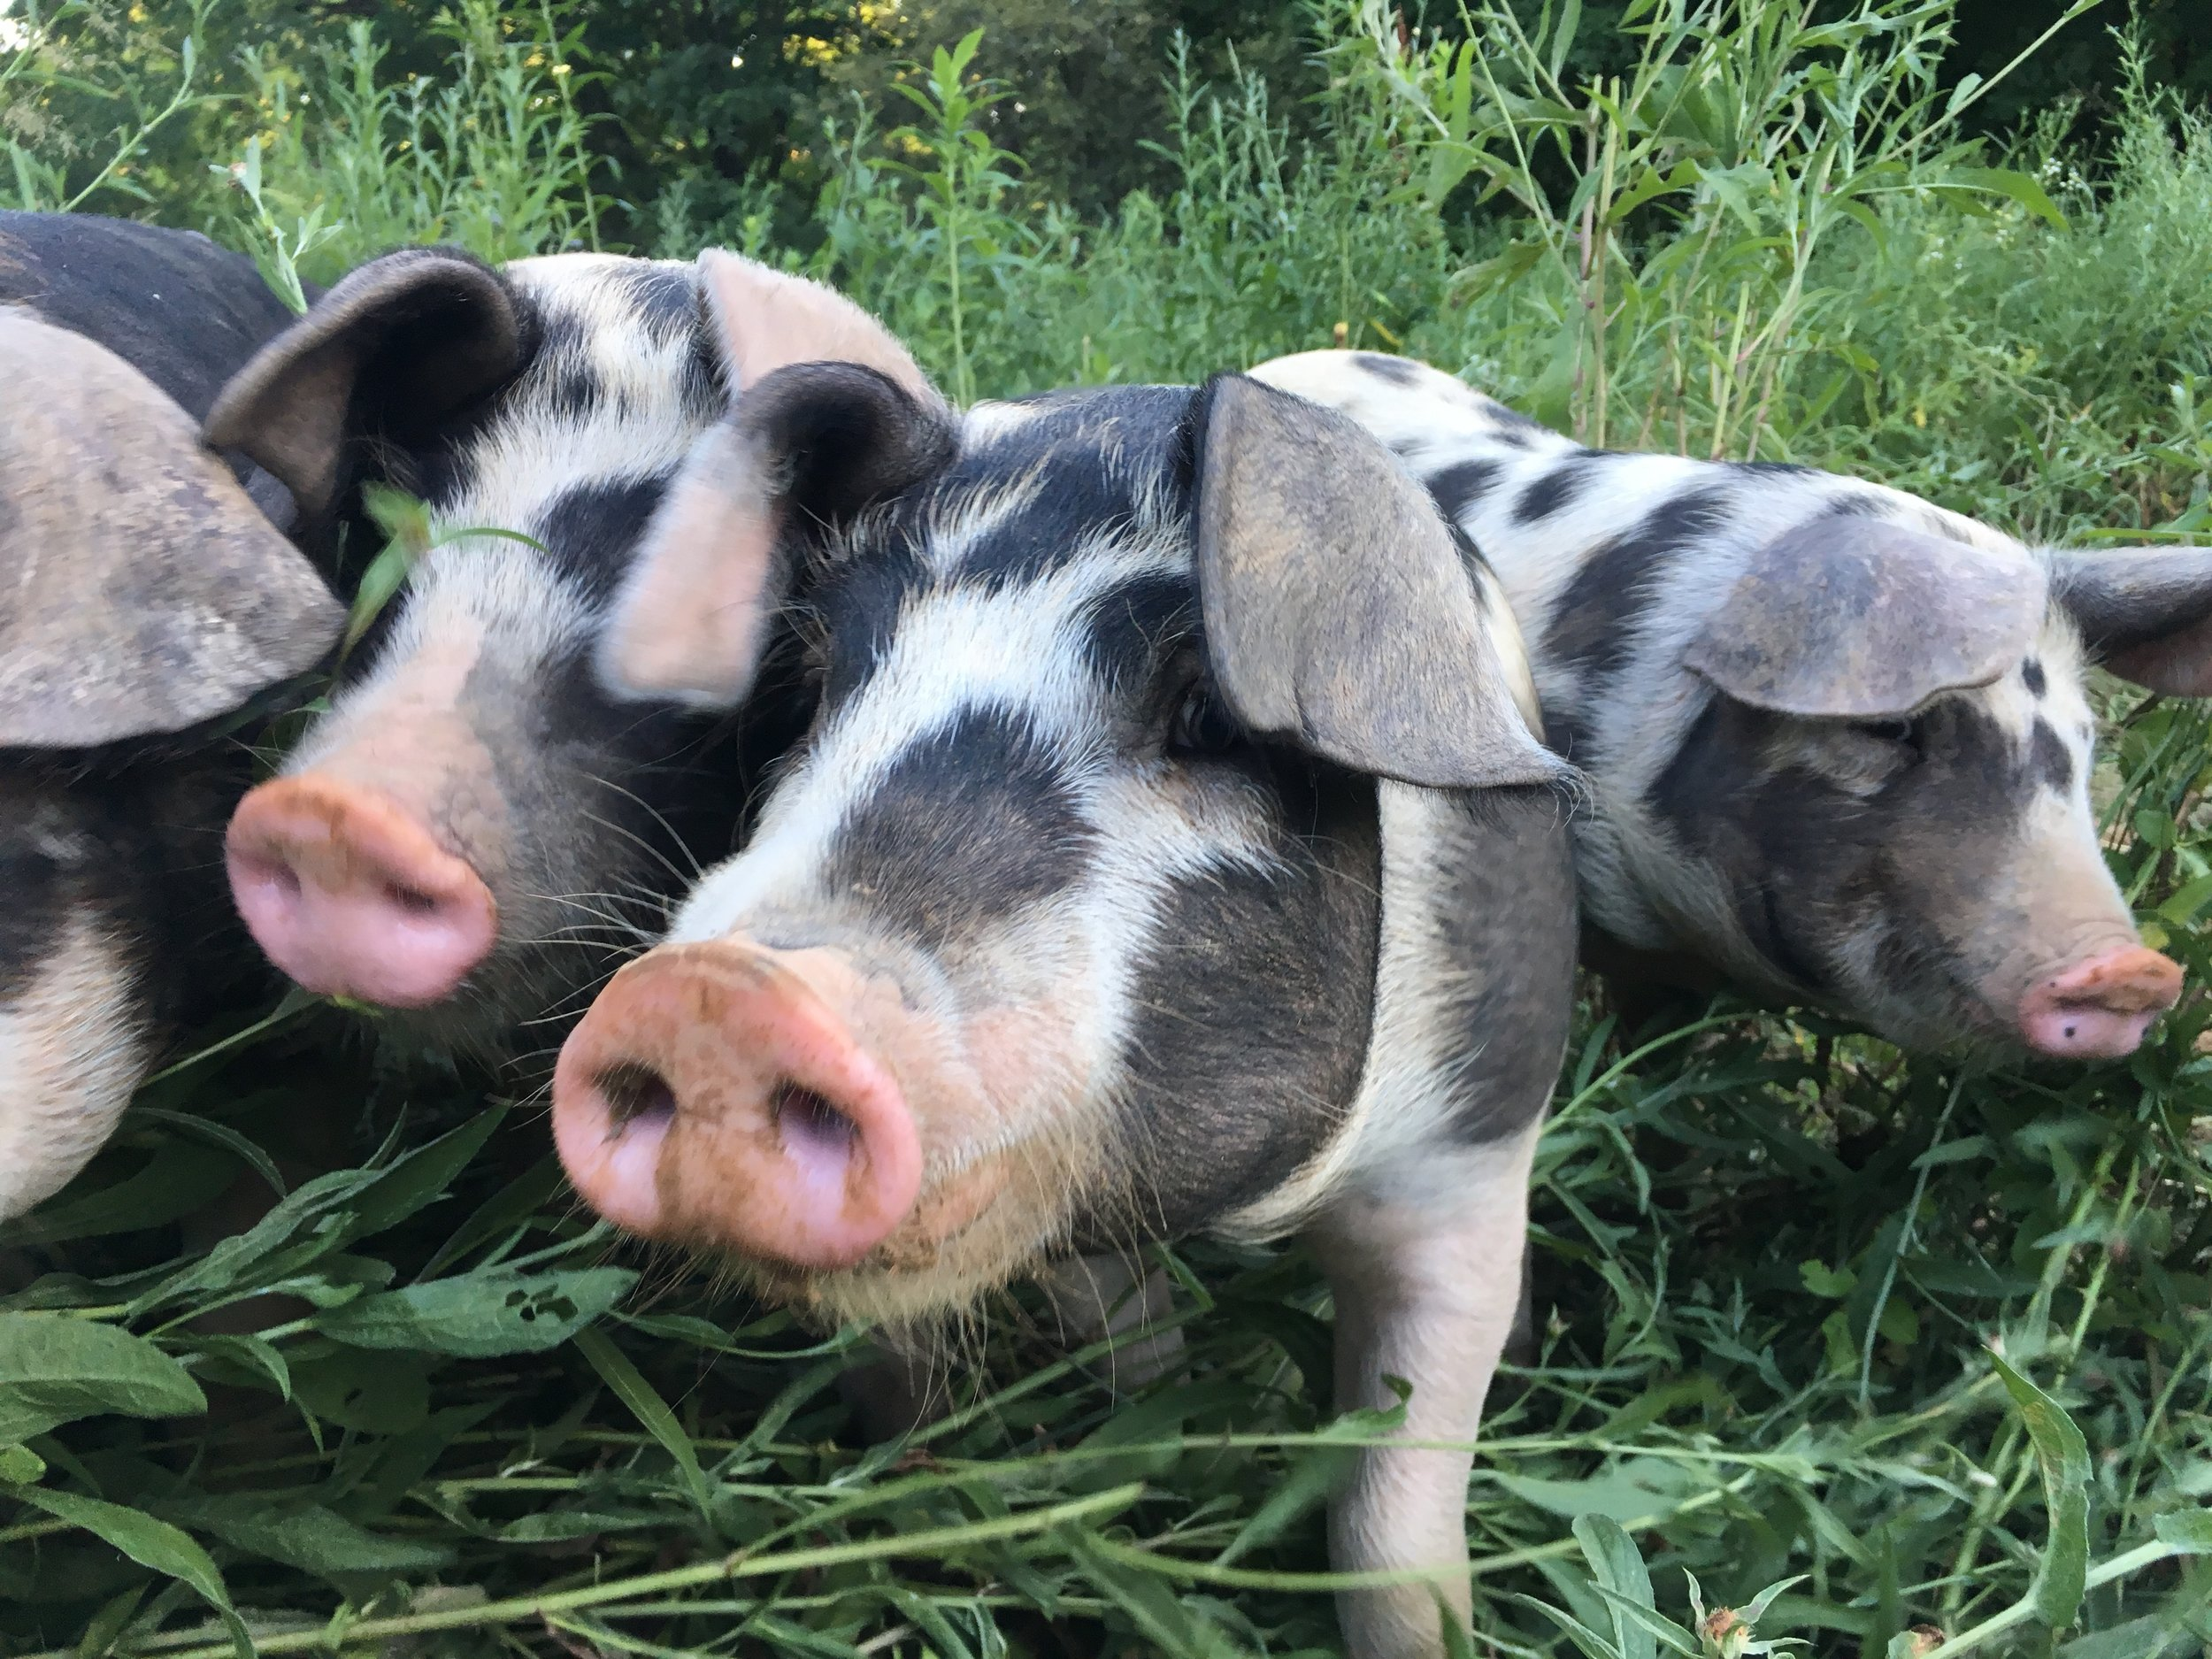 Our pigs are raised on pasture and in the woods where they lounge under oak trees (they love acorns!). In addition to nuts and fresh pasture, they receive non-GMO feed that is grown and milled locally in Hudson, NY. Our pigs are a mix of different heritage breeds, giving them excellent foraging abilities.